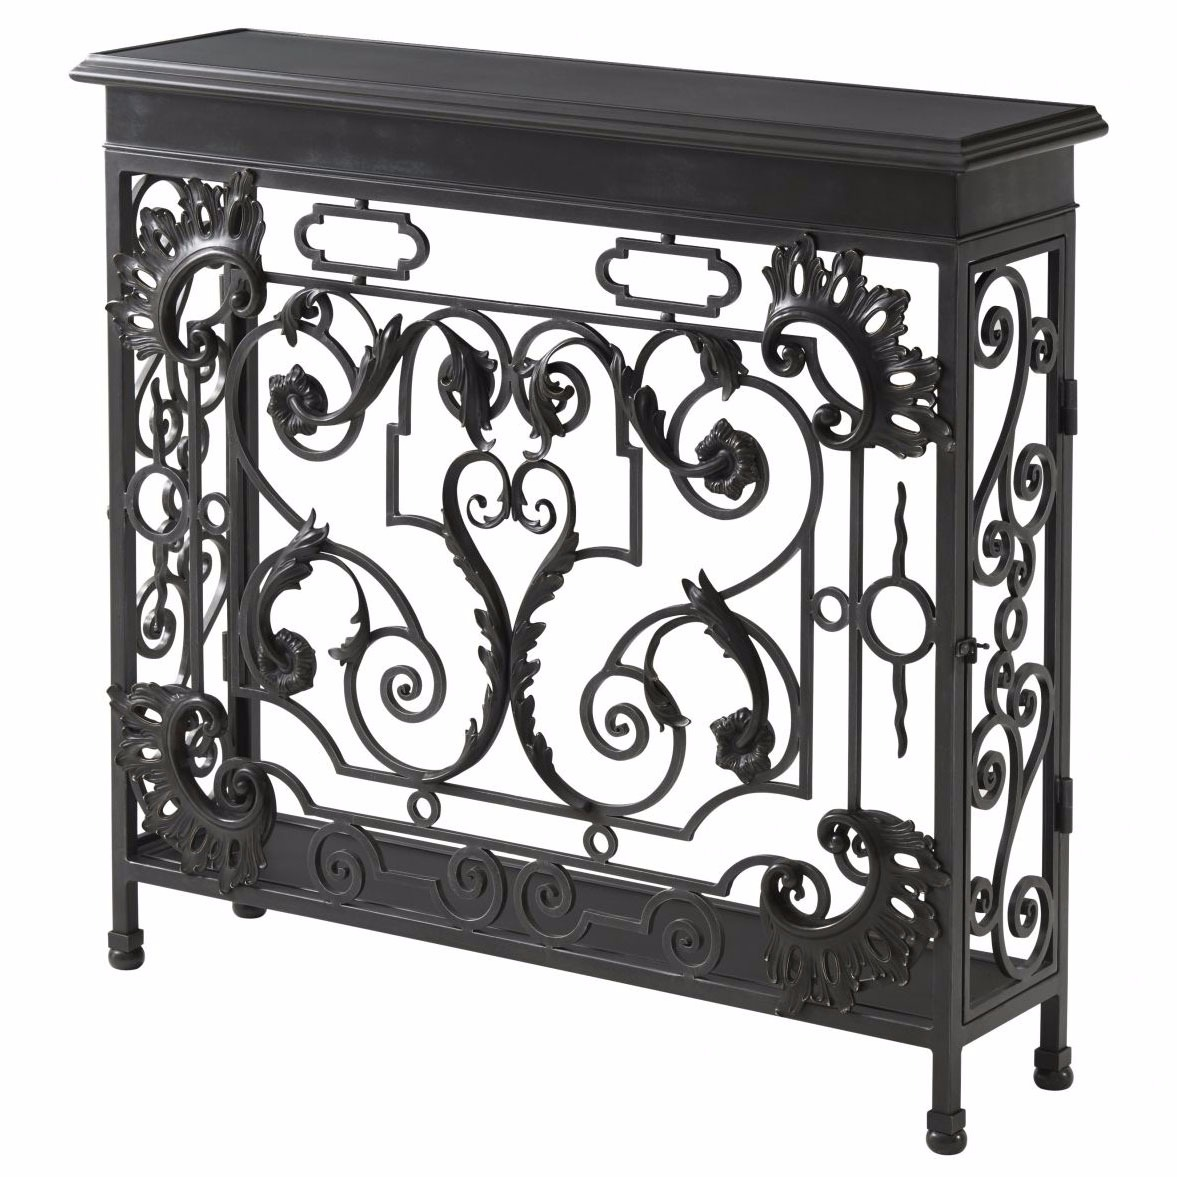 A wrought iron and brass console table